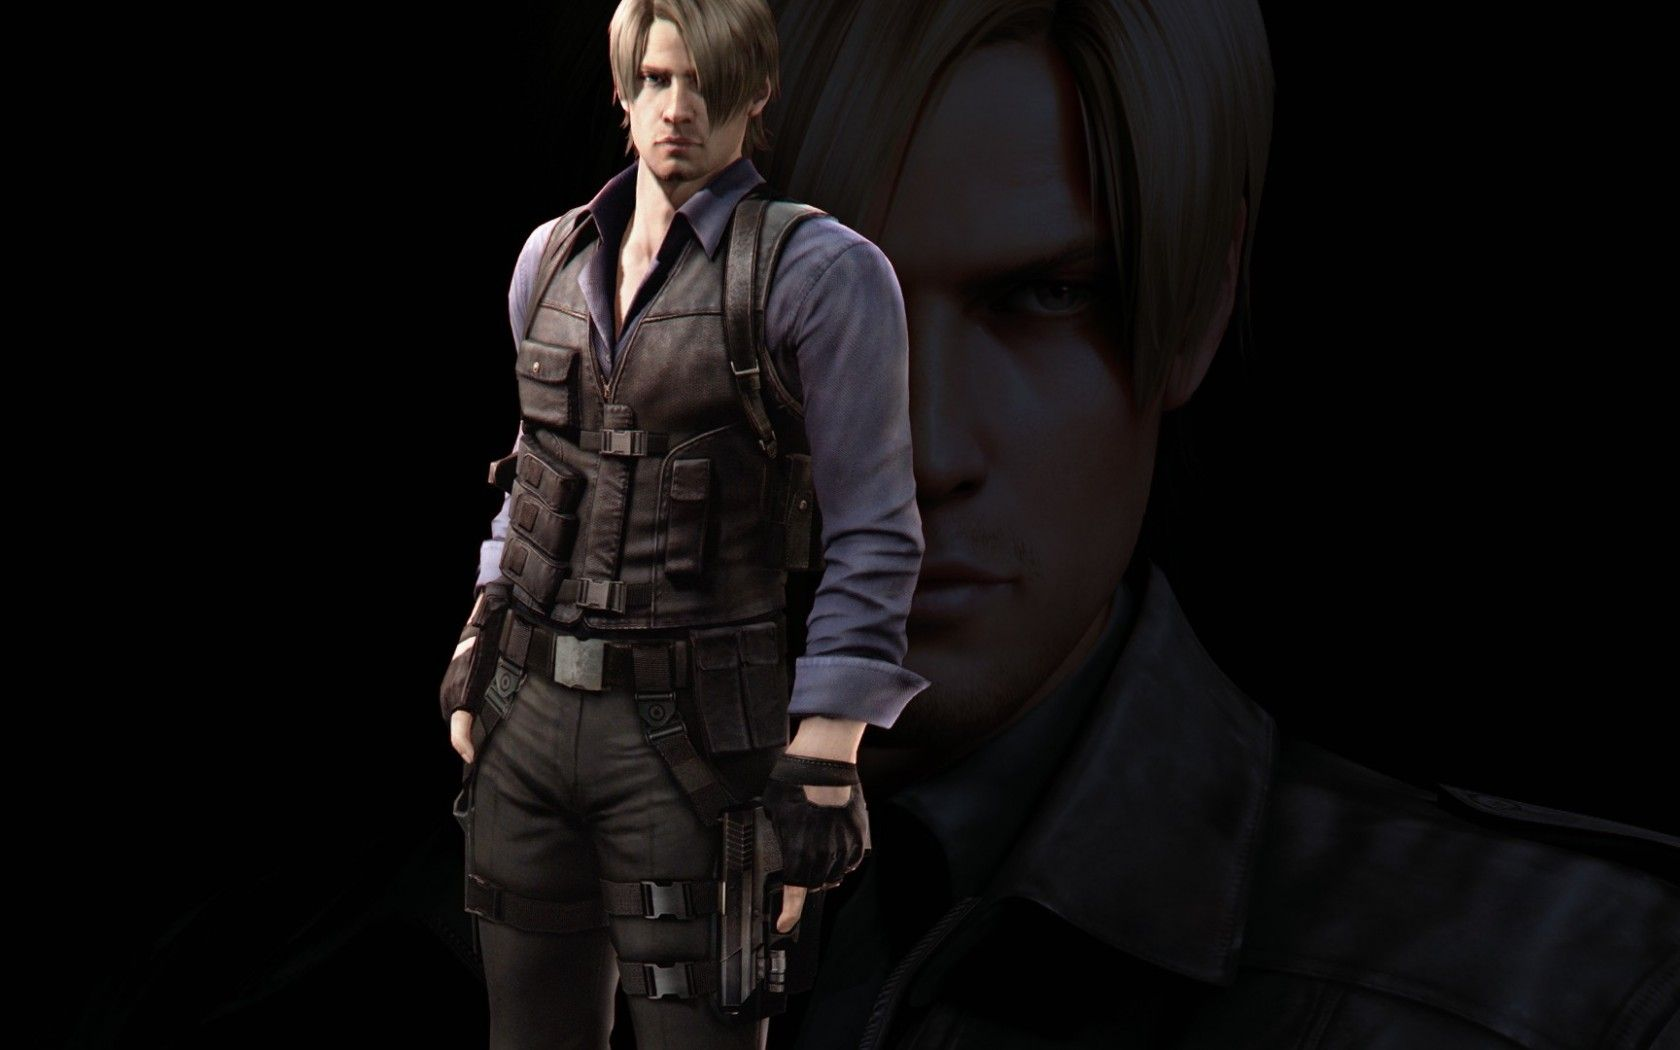 leon s kennedy wallpaper resident evil 6 - google search